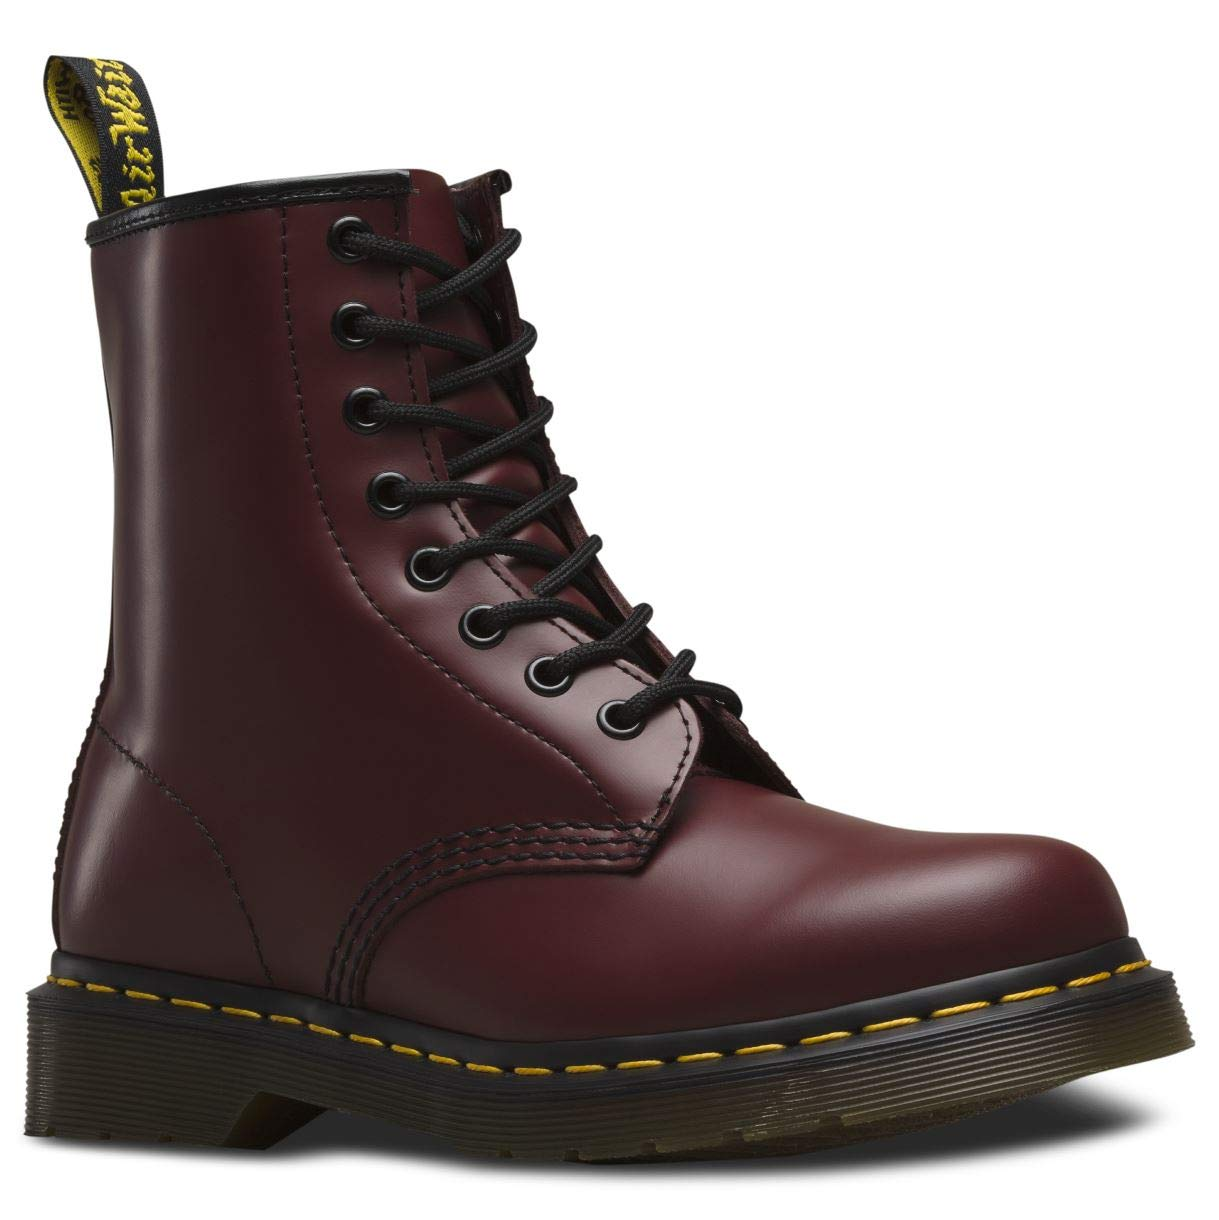 Dr. Martens - 1460, Cherry Red Smooth, 8 US Women / 7 US Men